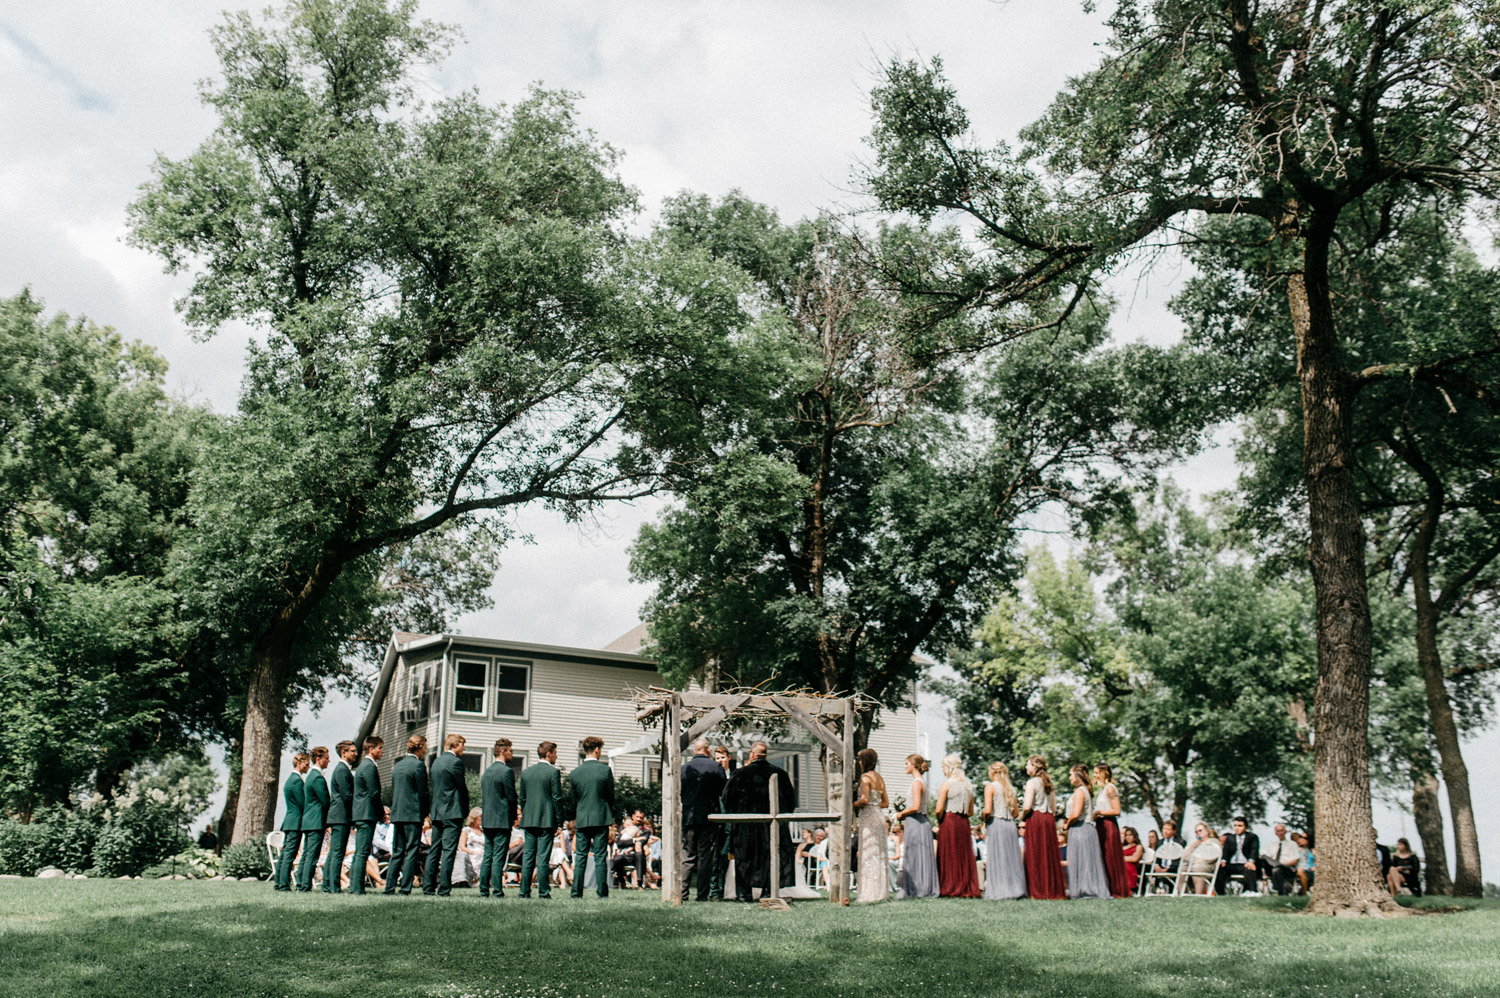 Outdoor ceremony at Rustic Oaks by geneoh photography